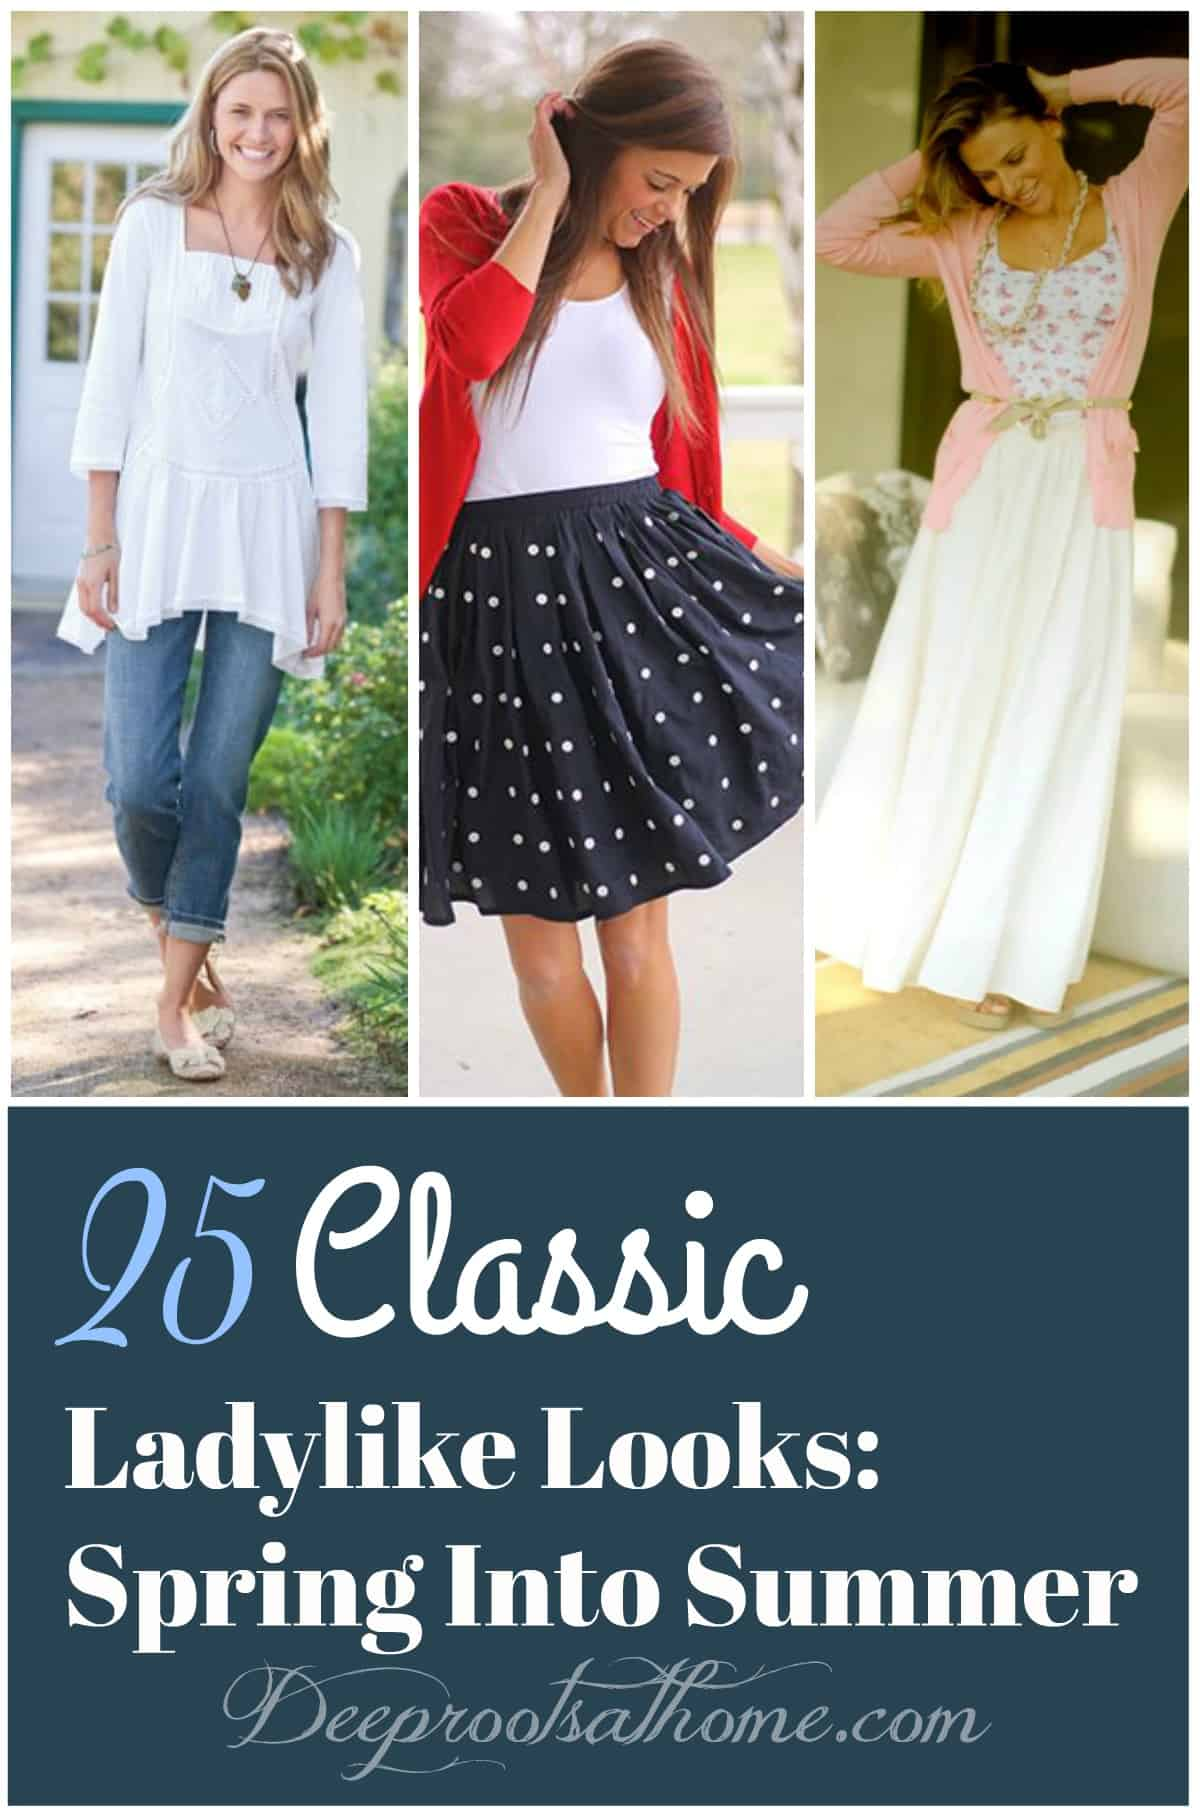 25 Classic Ladylike Looks For You: Spring Heading Into Summer. For Pinterest: a collage of classy, casual summer looks